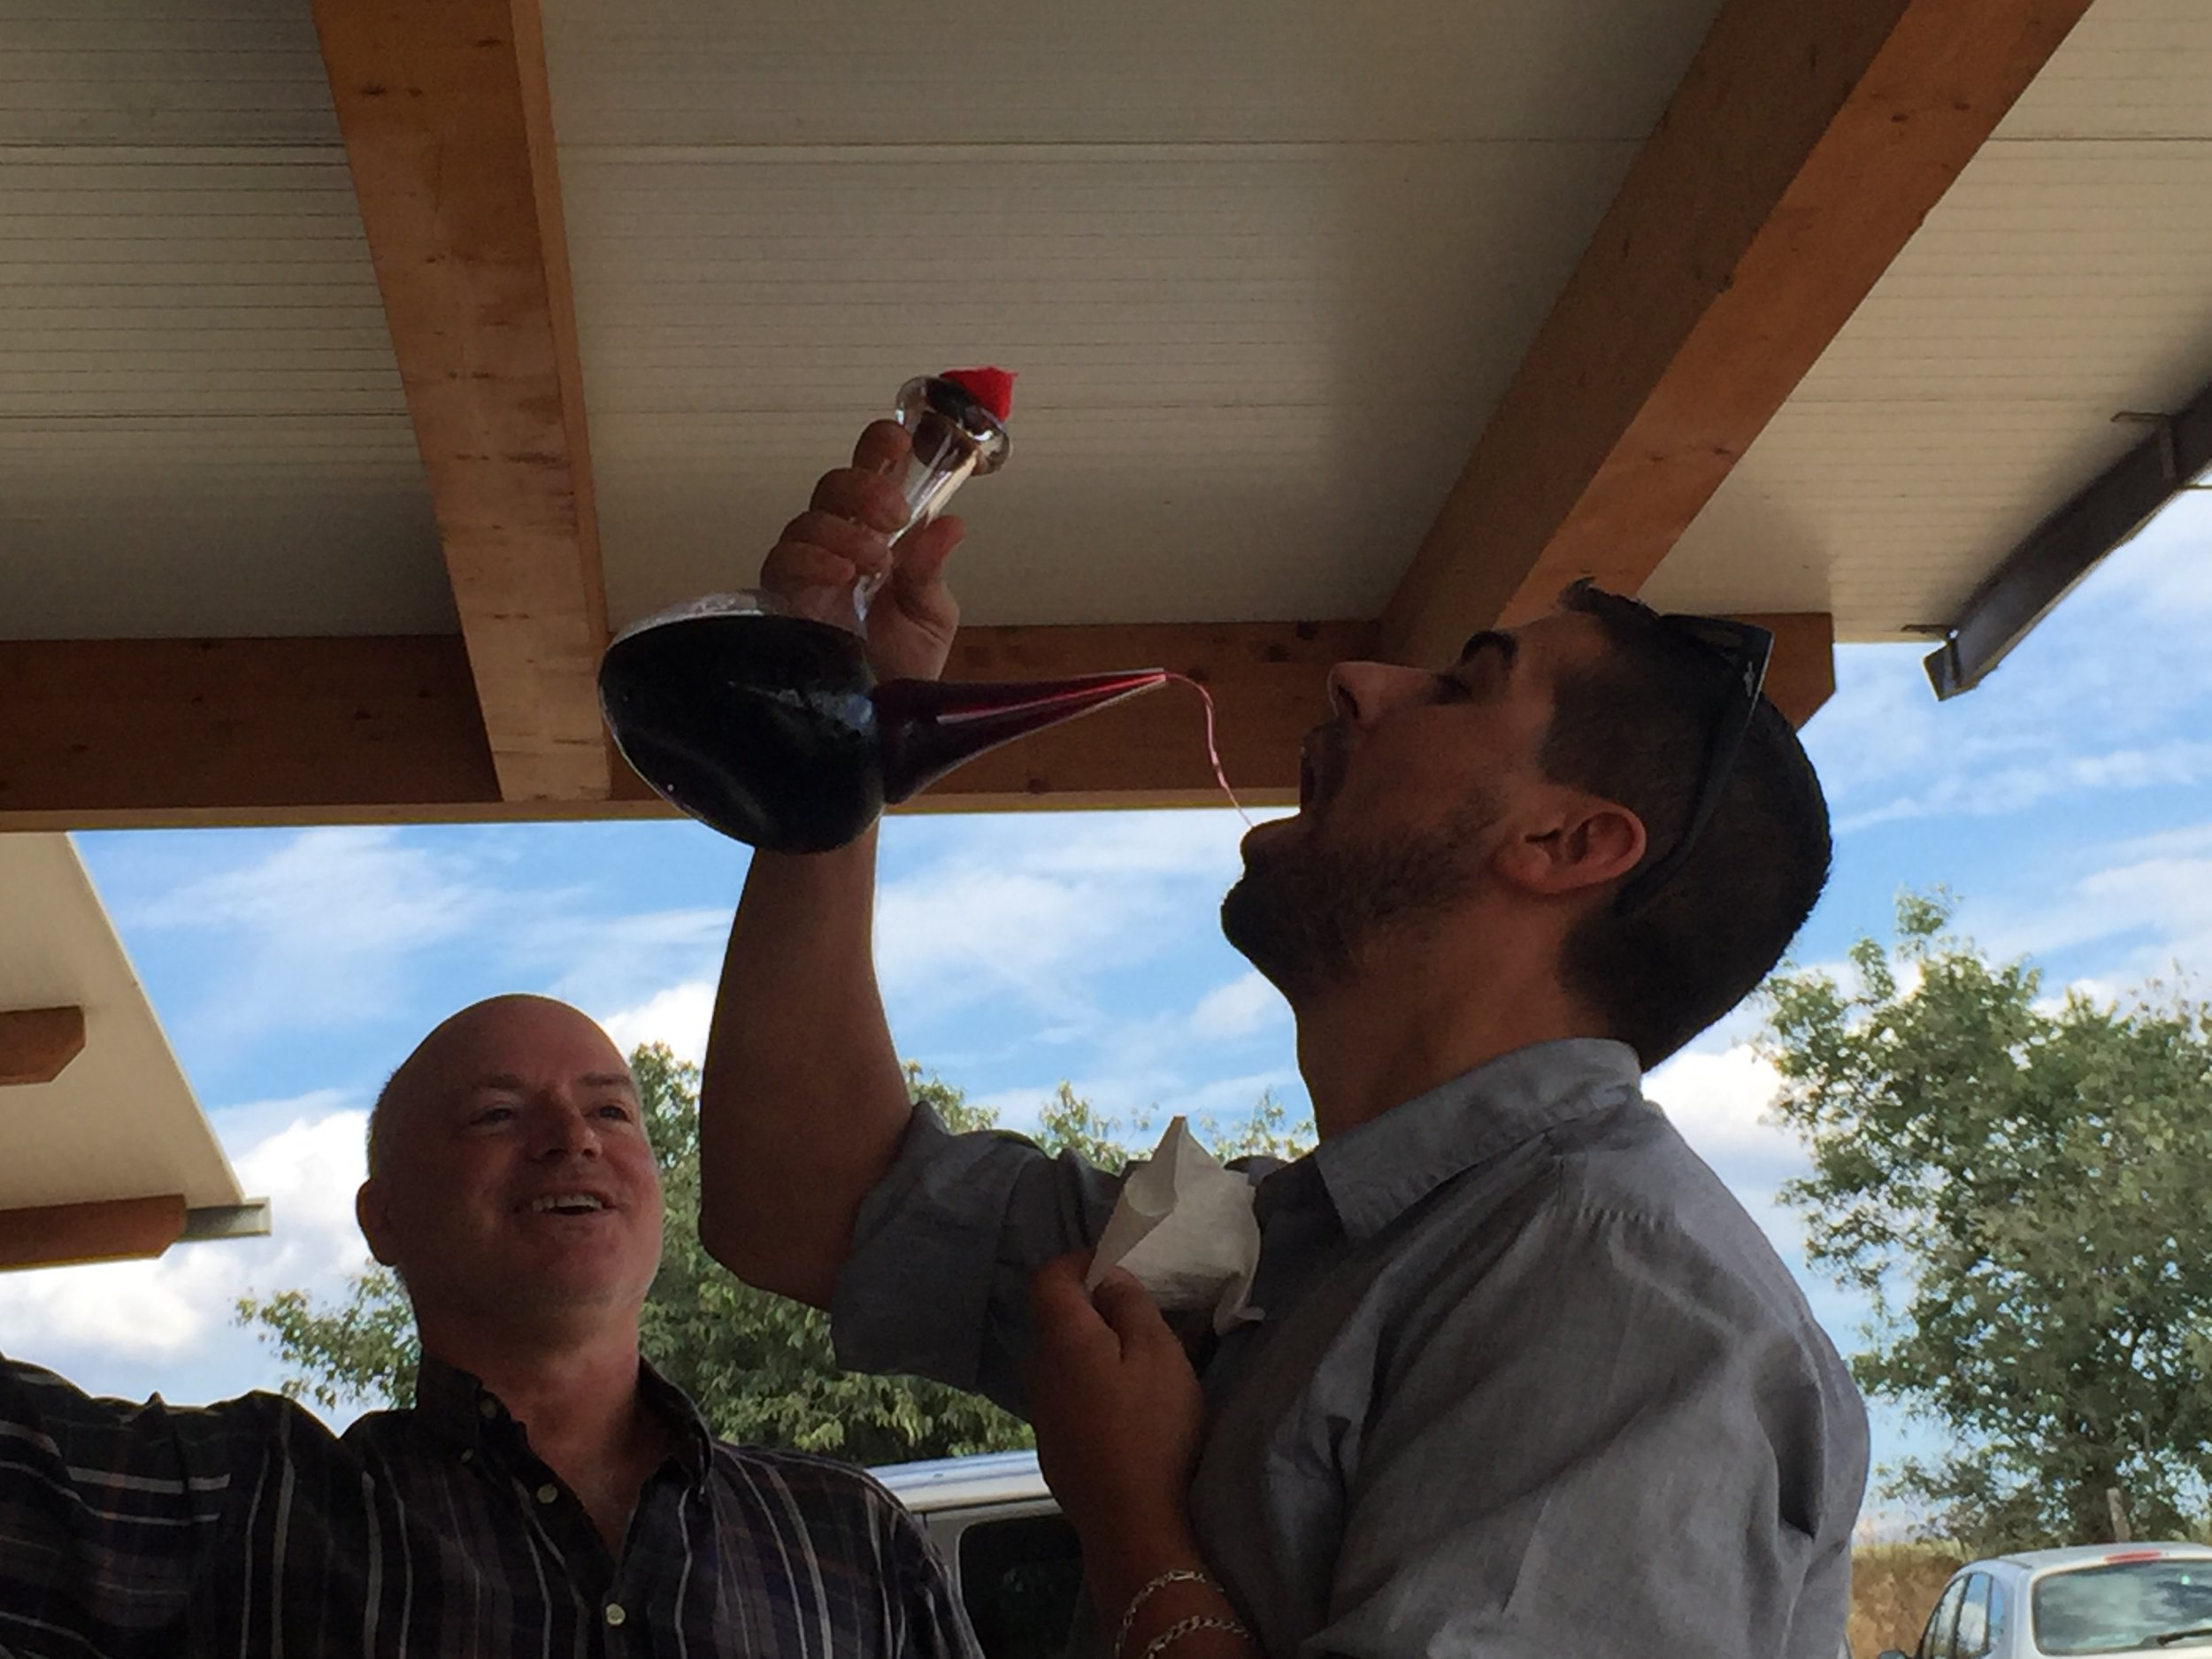 Ruben, our handsome driver demonstrating how to drink the wine with encouragement from our guide for the day, Jack.